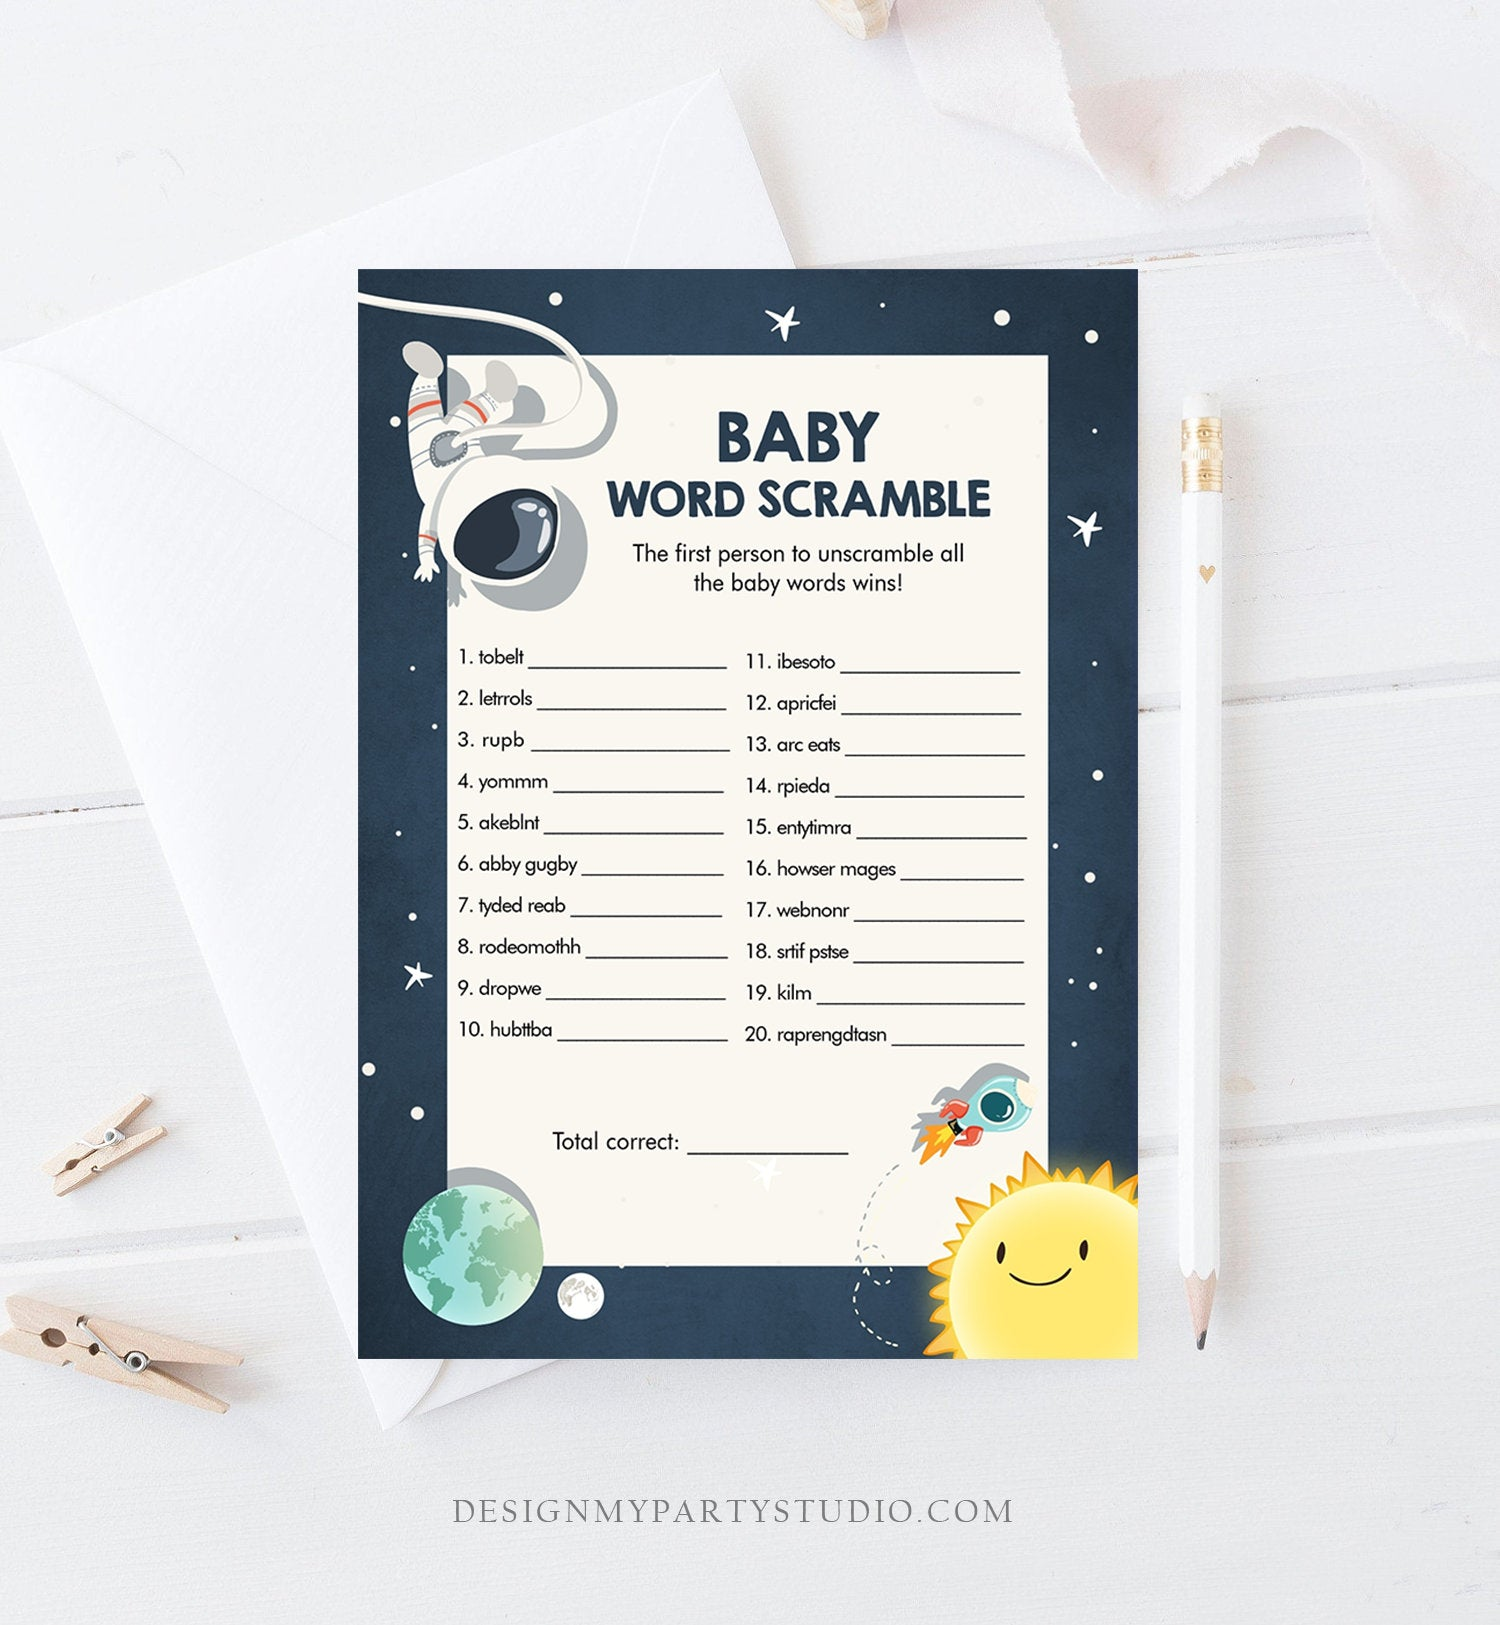 Editable Word Scramble Baby Shower Game Space Baby Shower Activity Astronaut Rocket Boy Space Ship Word Search Corjl Template Printable 0046